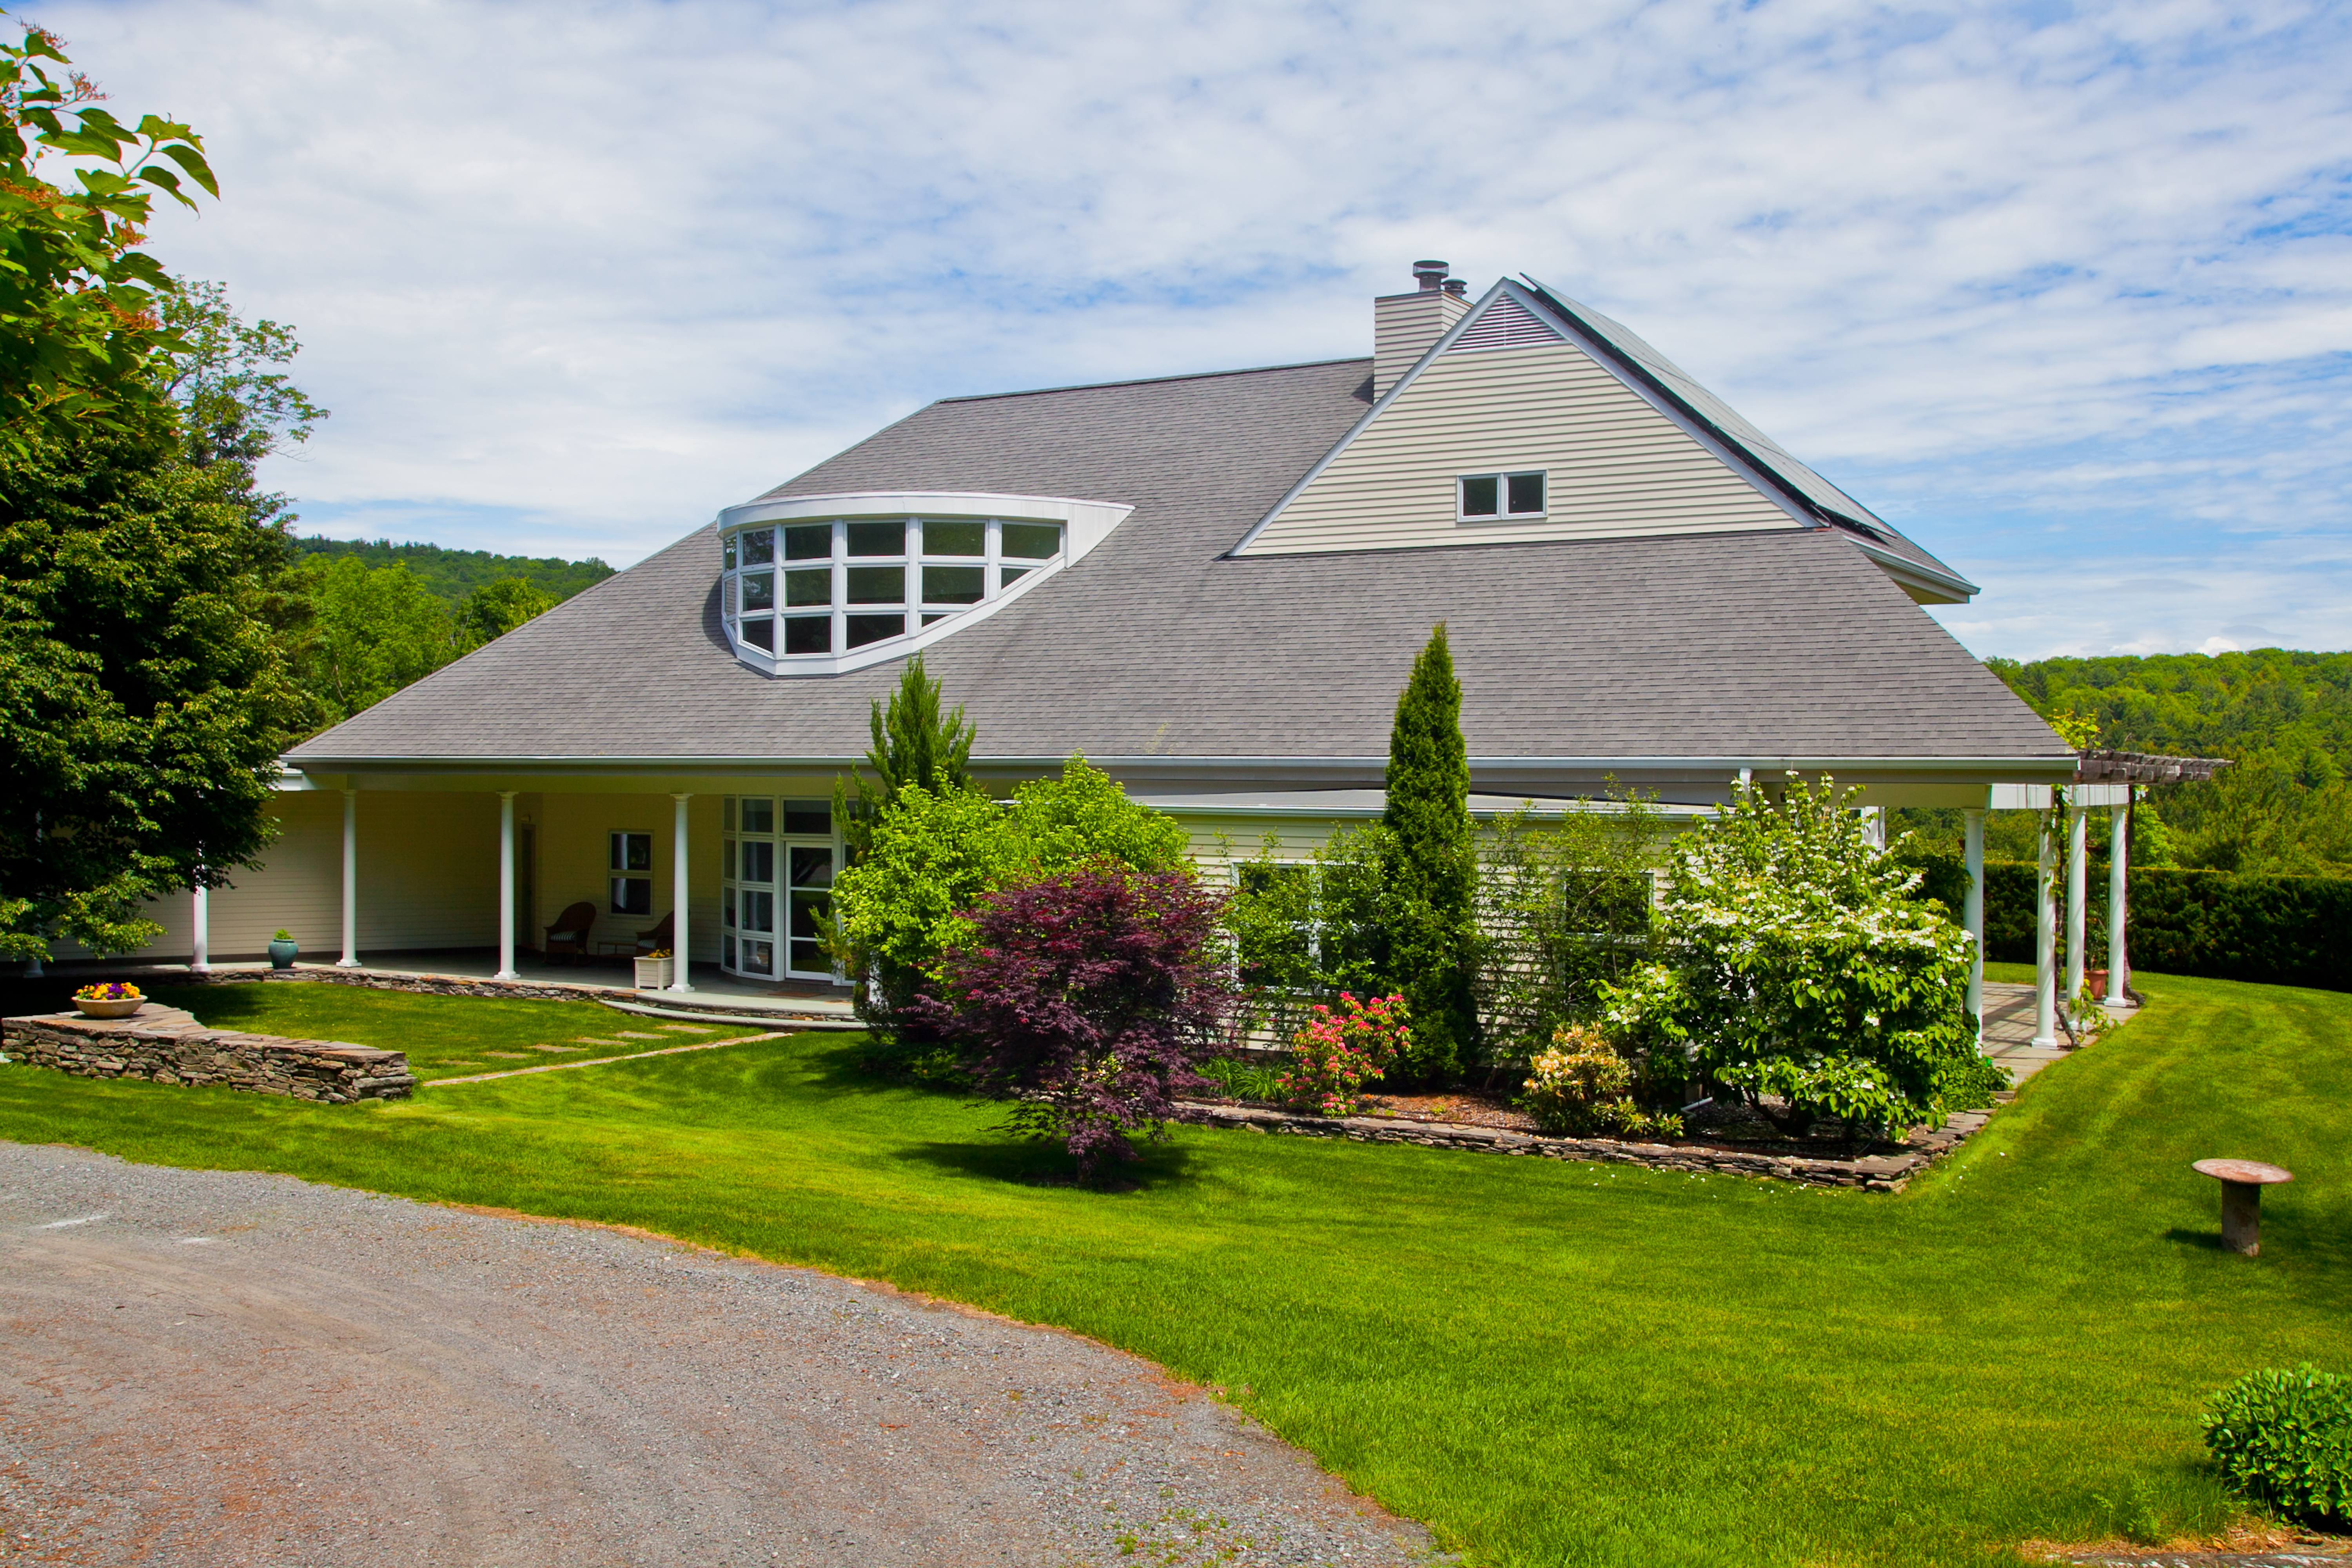 Property For Sale at Stunning Contemporary with Mountain Views on 15 Private Acres, Ideal Location